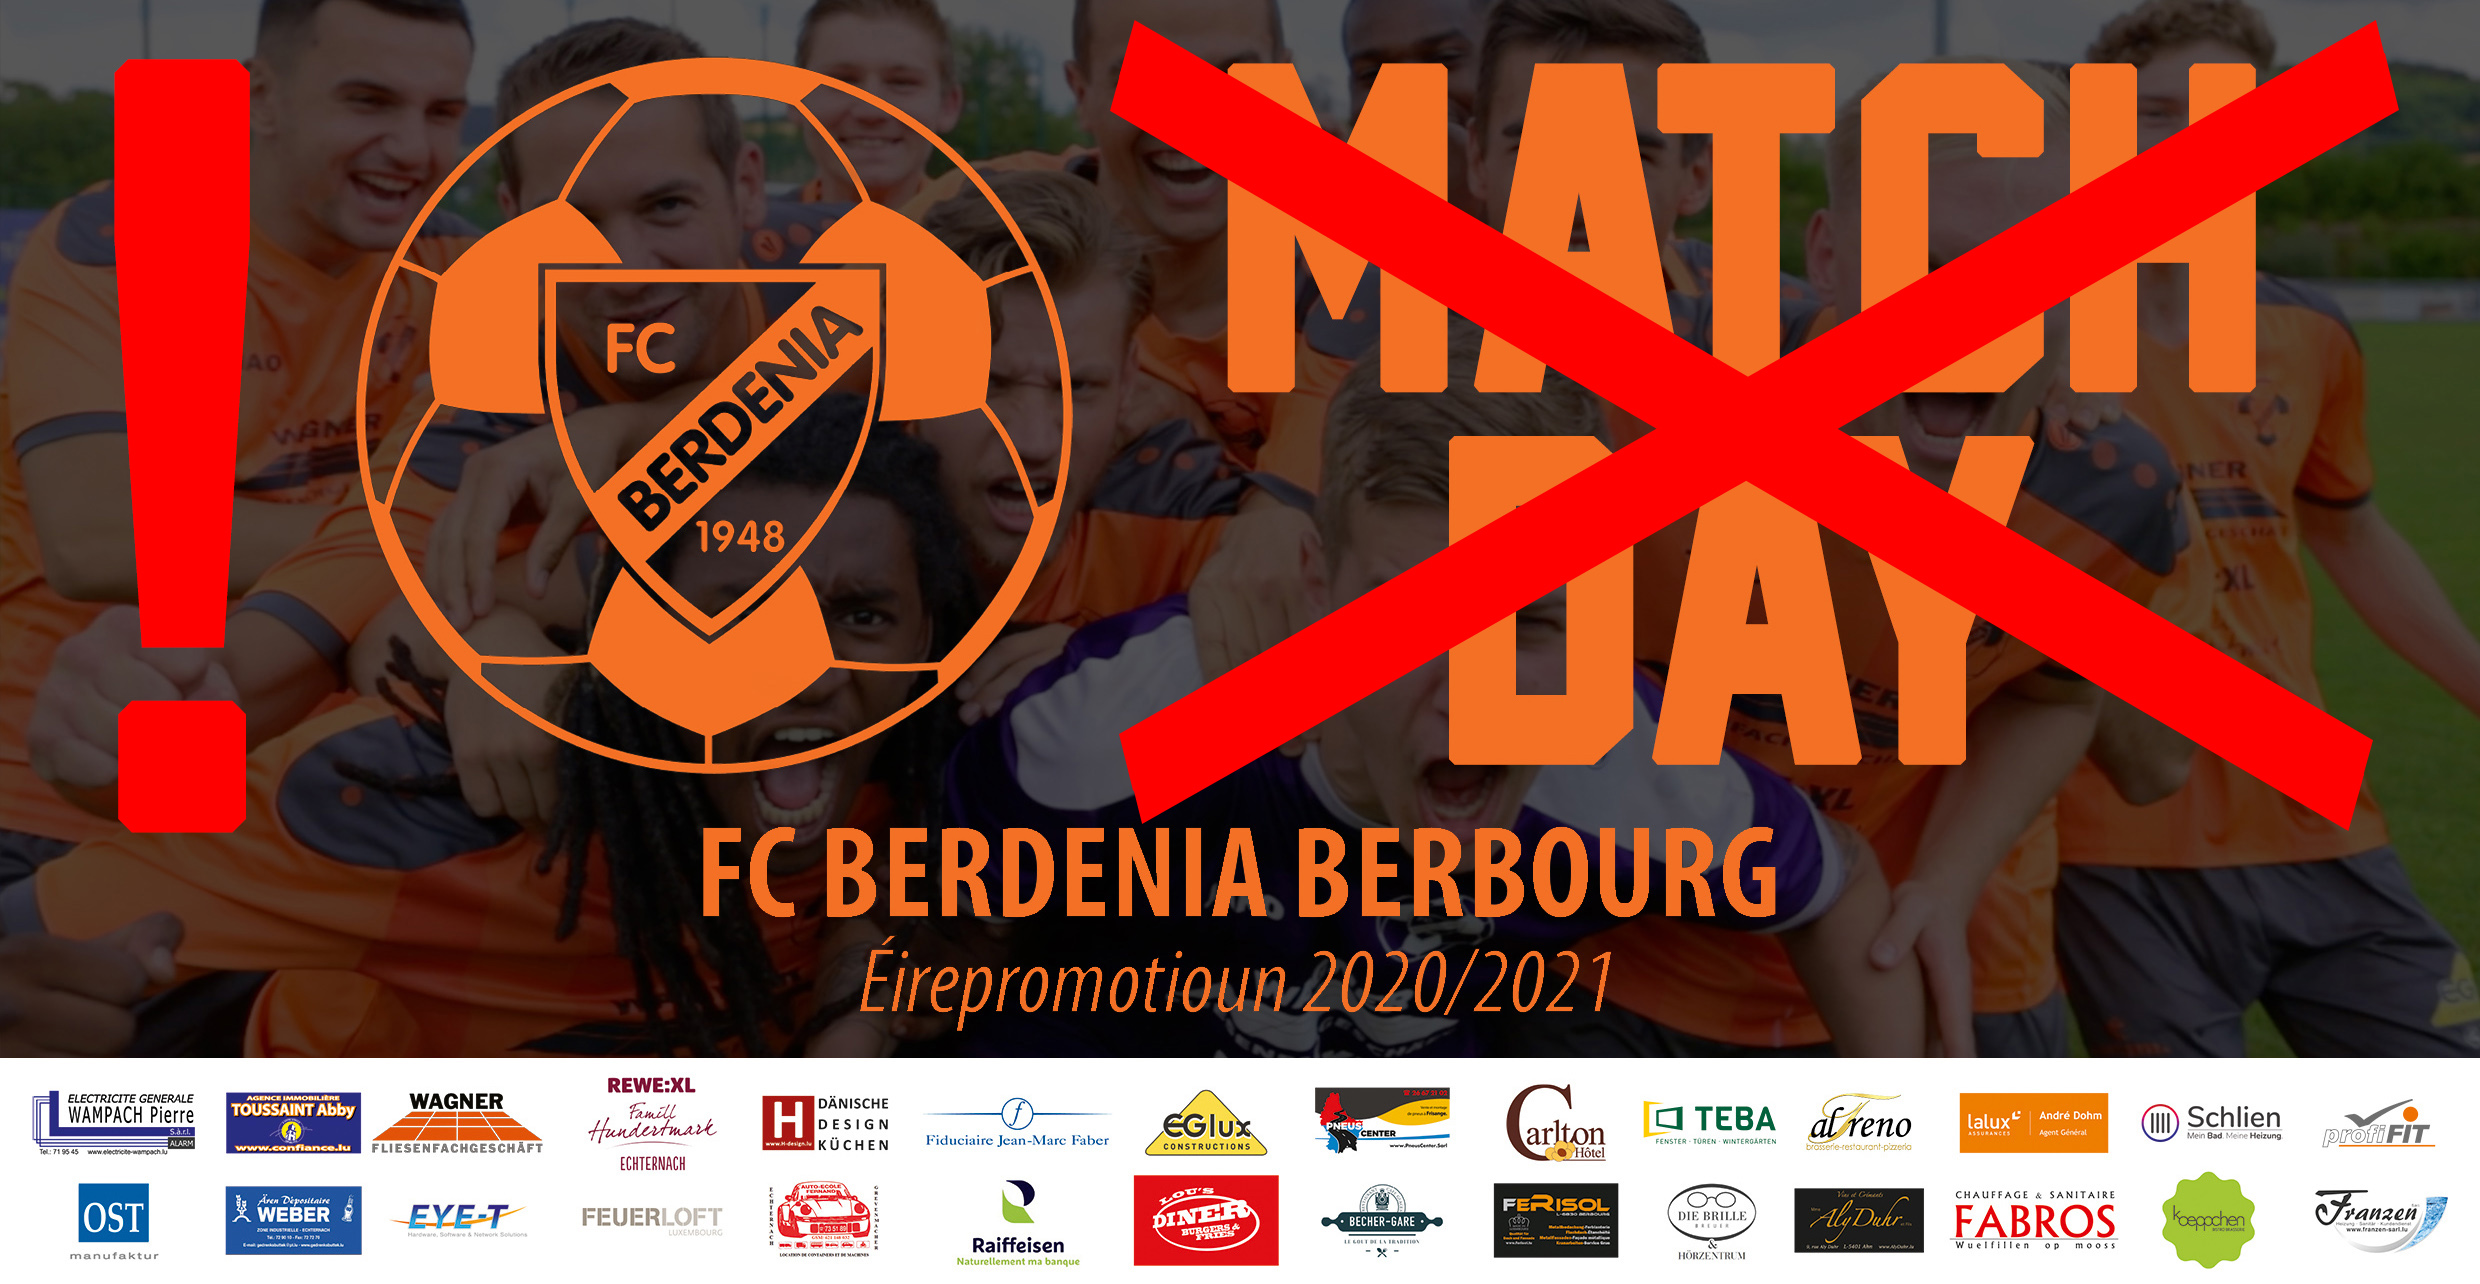 MATCH OOFGESOT!